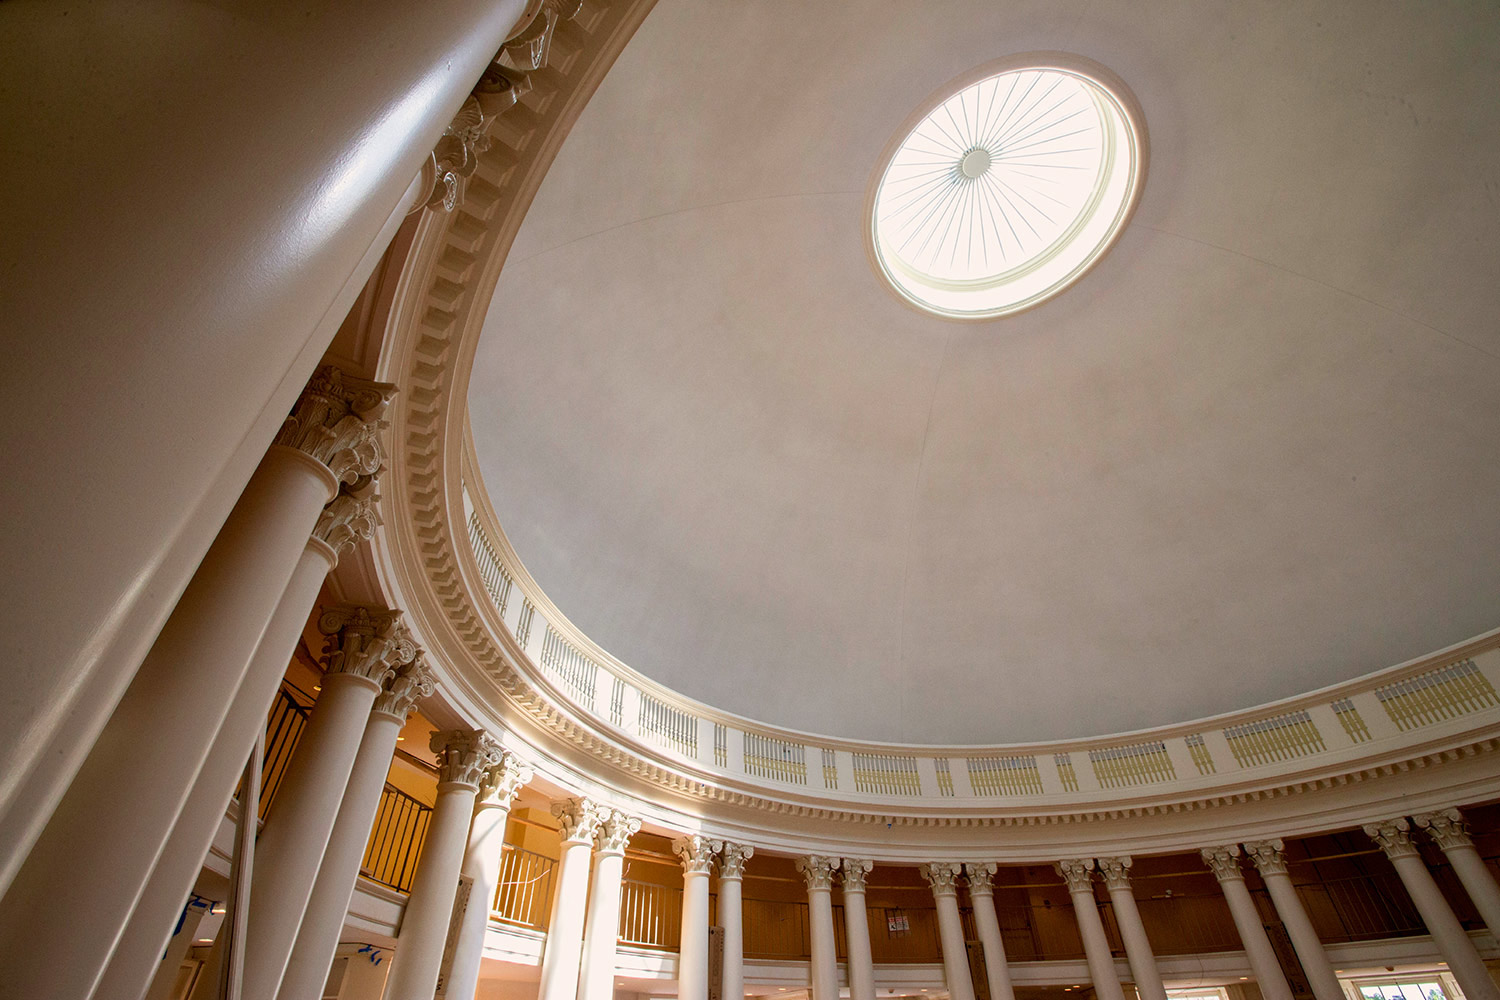 The interior of the Dome Room on Friday morning. (Photos by Dan Addison, University Communications)